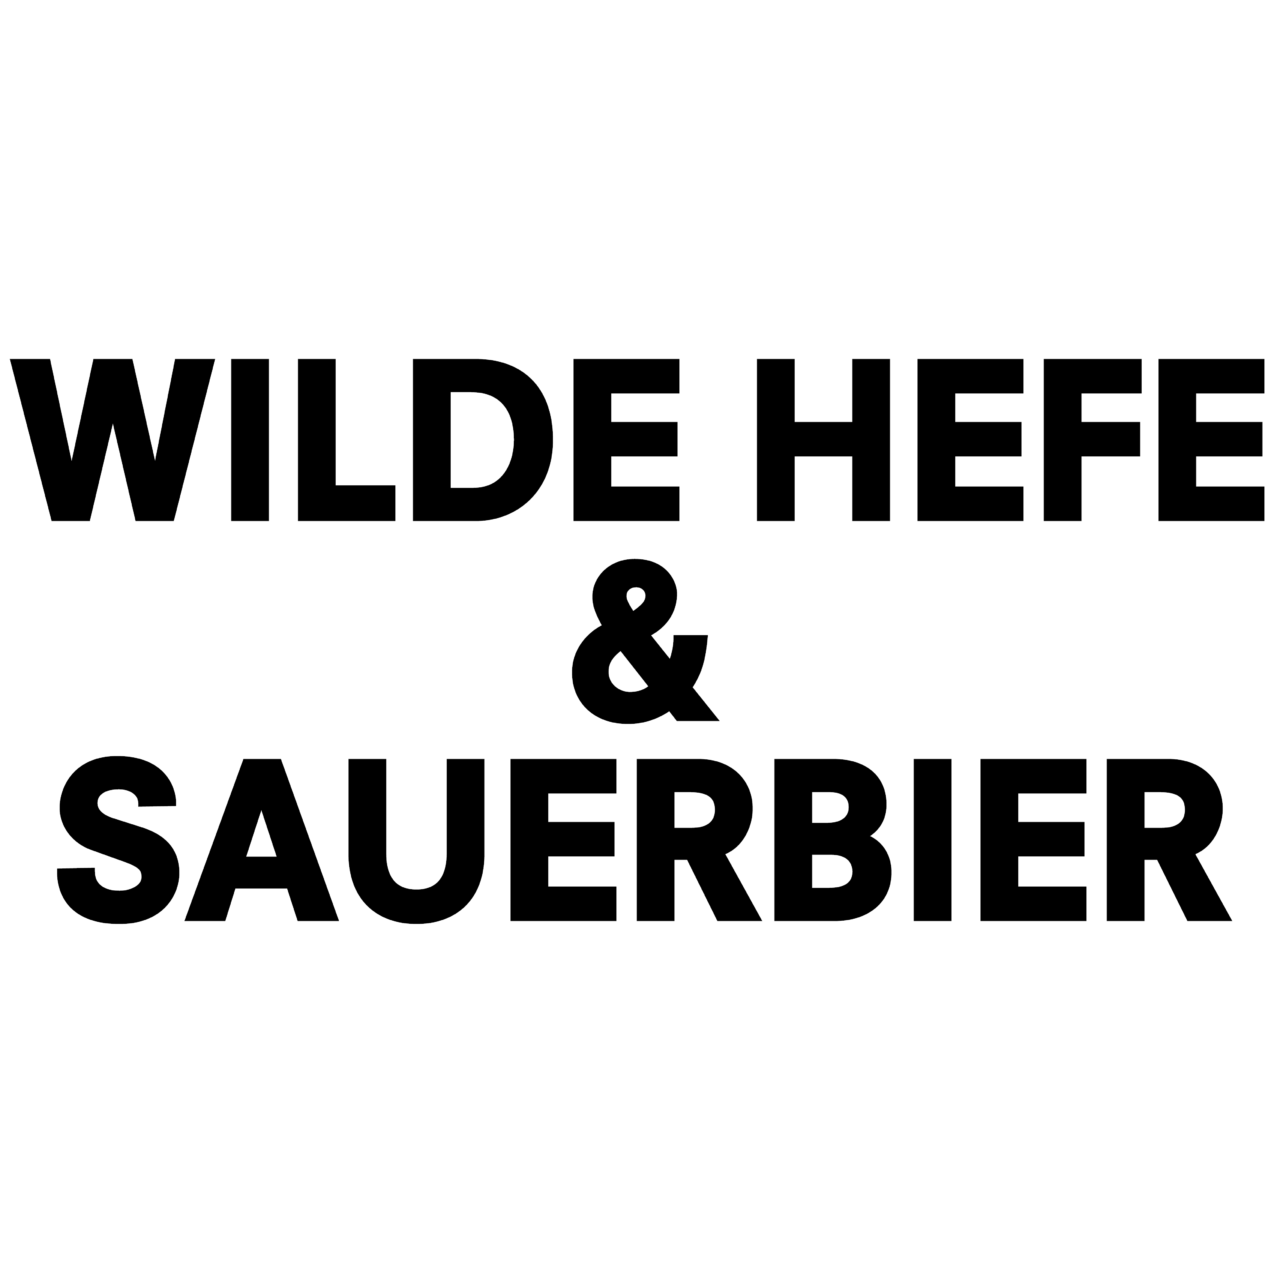 https://blackwellbrewery.ch/wp-content/uploads/2021/08/WildeHefe-1280x1280.png